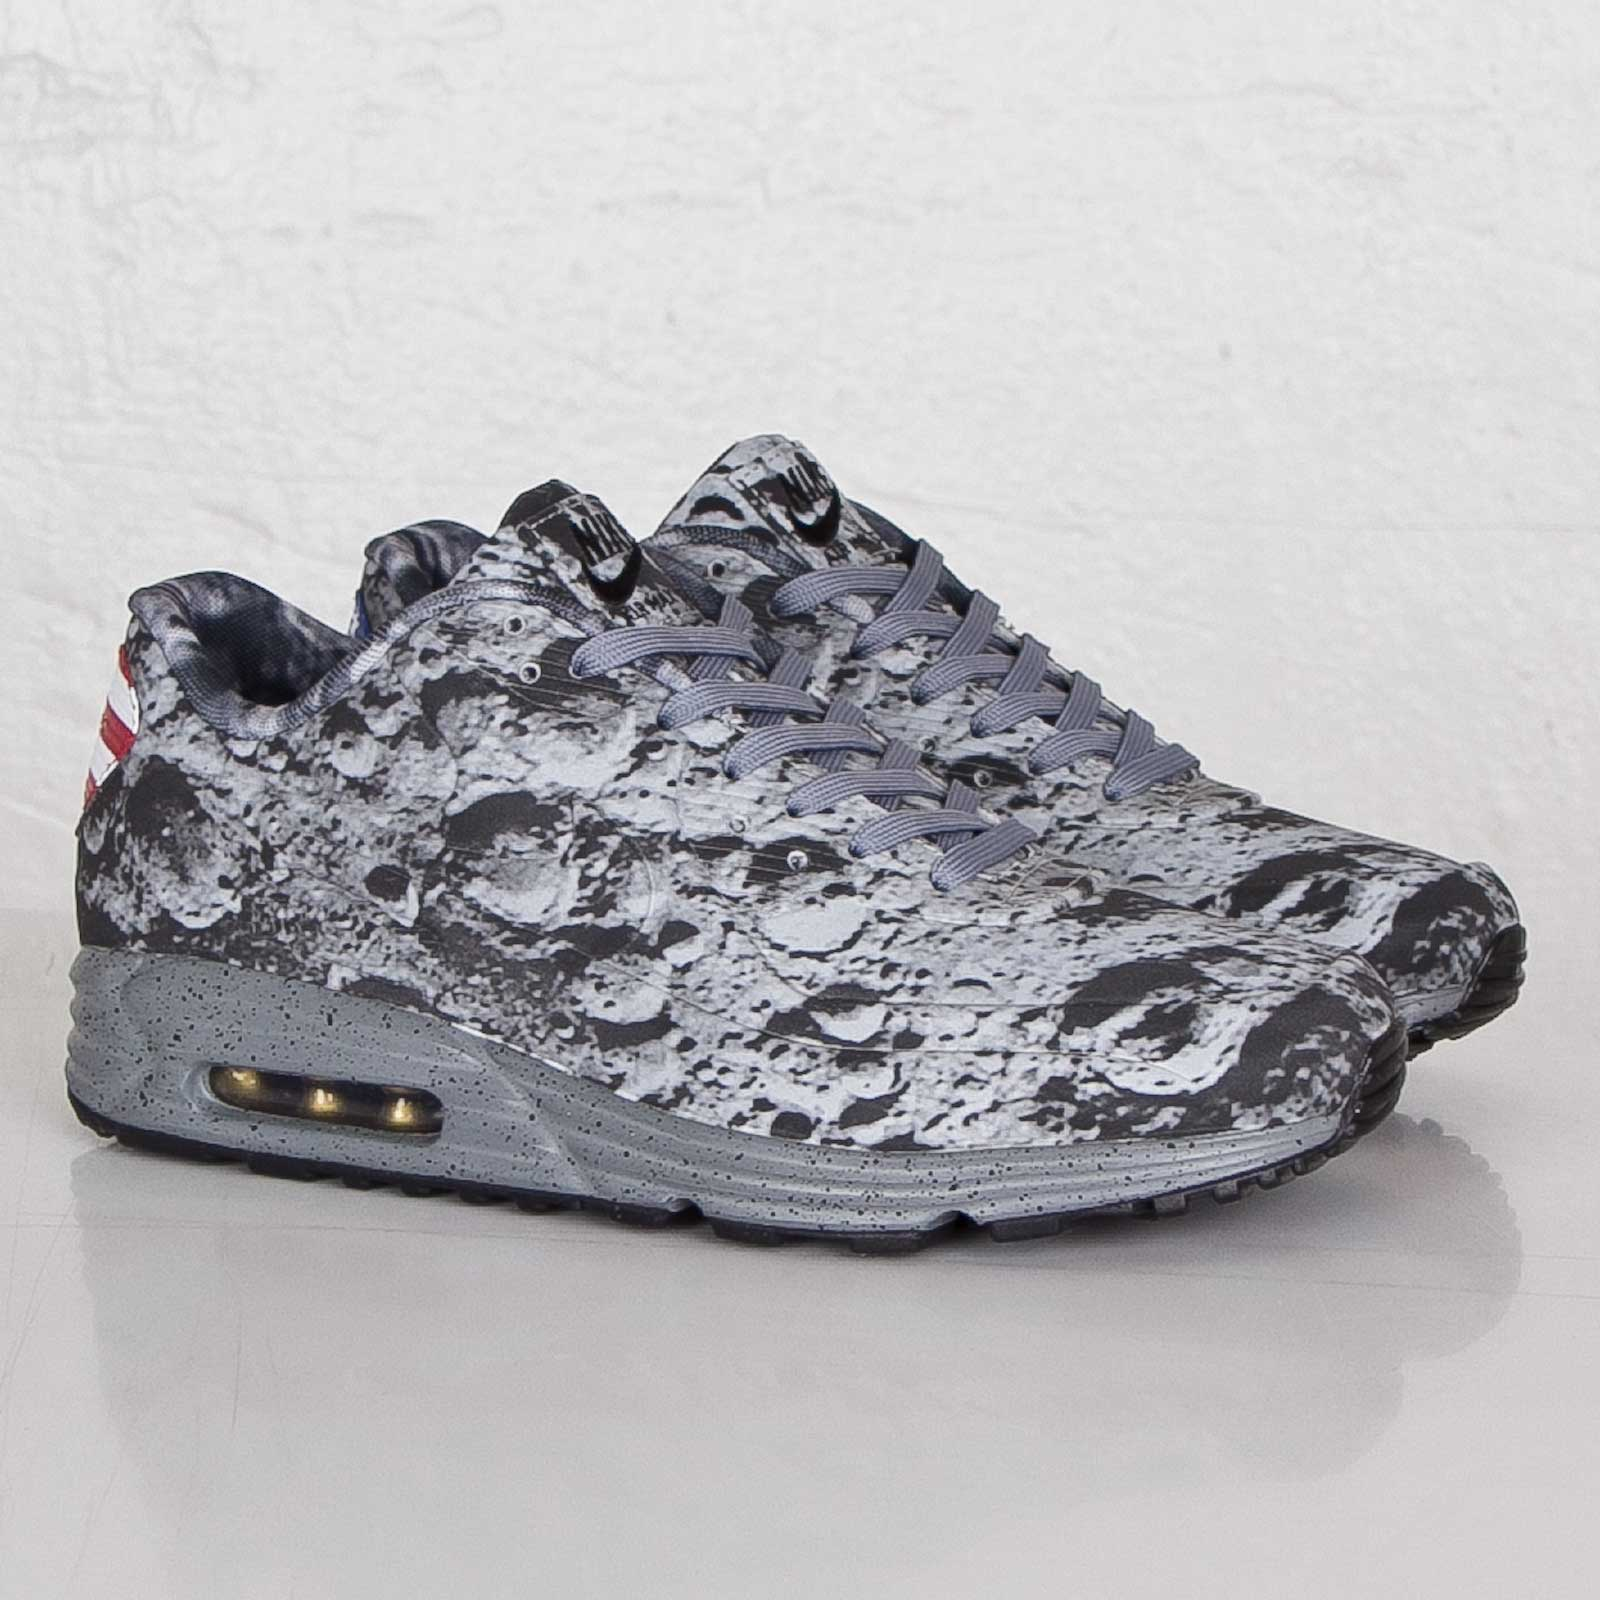 Nike Air Max Lunar 90 SP Moon Landing Reflective Silver 700098 007 Mens Womens Running Shoes 700098 007